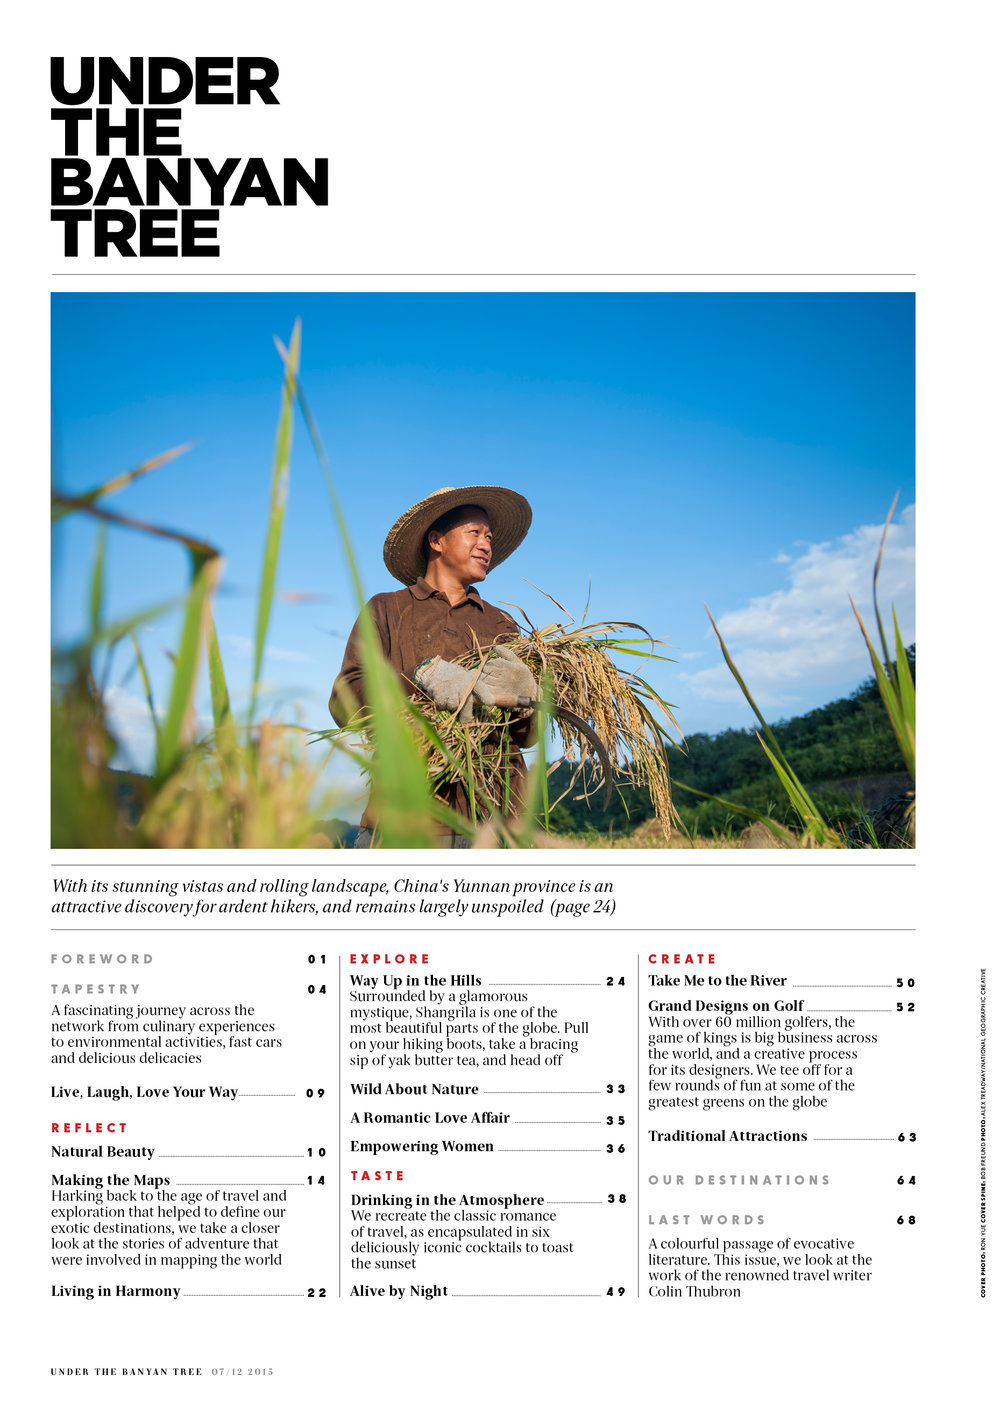 Under the Banyan Tree Magazine